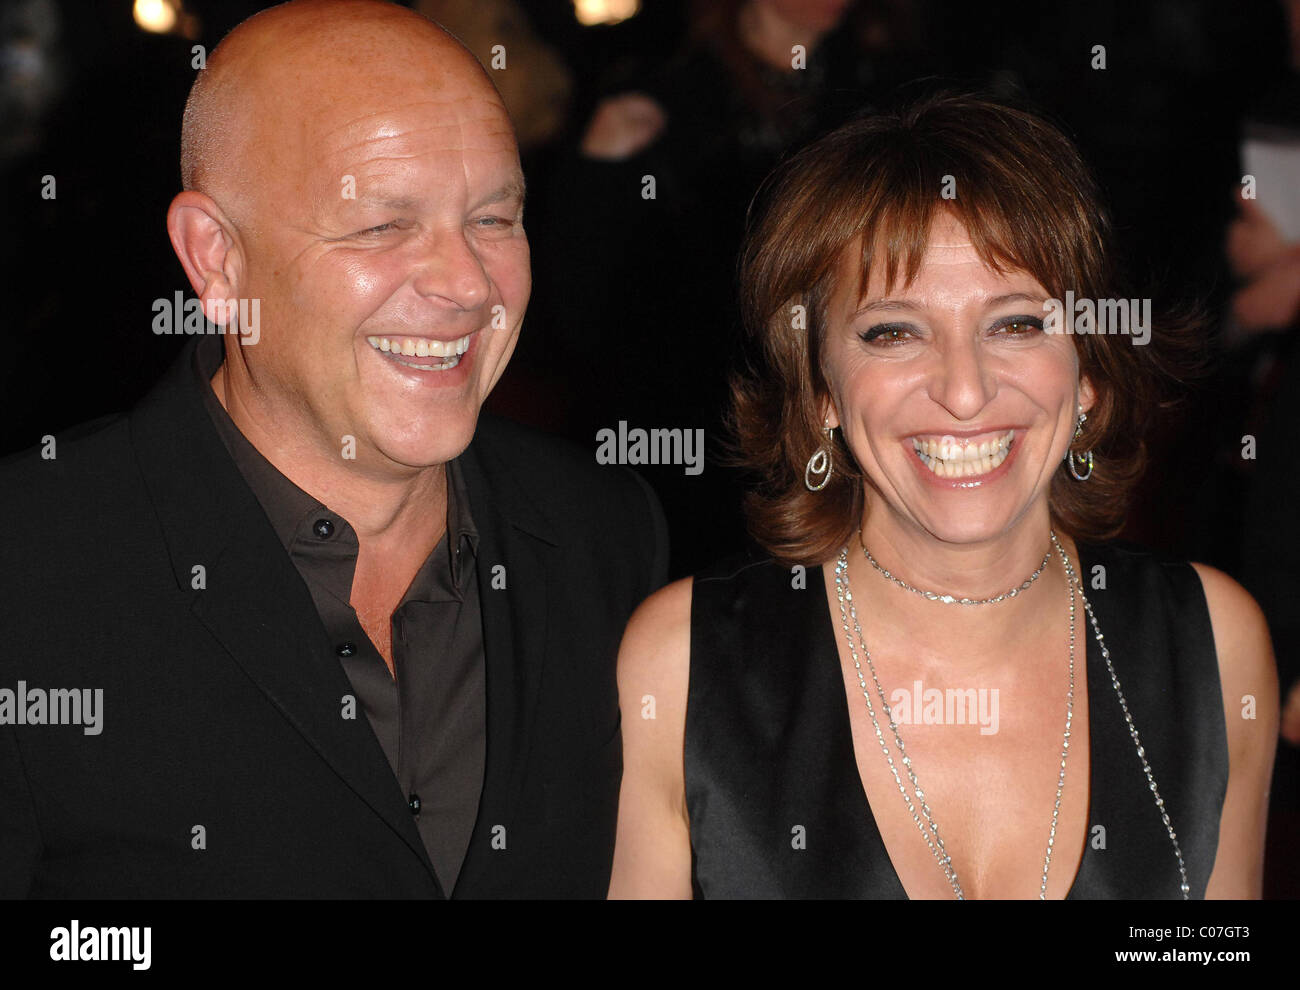 Director Susanne Bier and husband Jesper Winge Leisner The Times BFI London Film Festival: Things We Lost in the Stock Photo